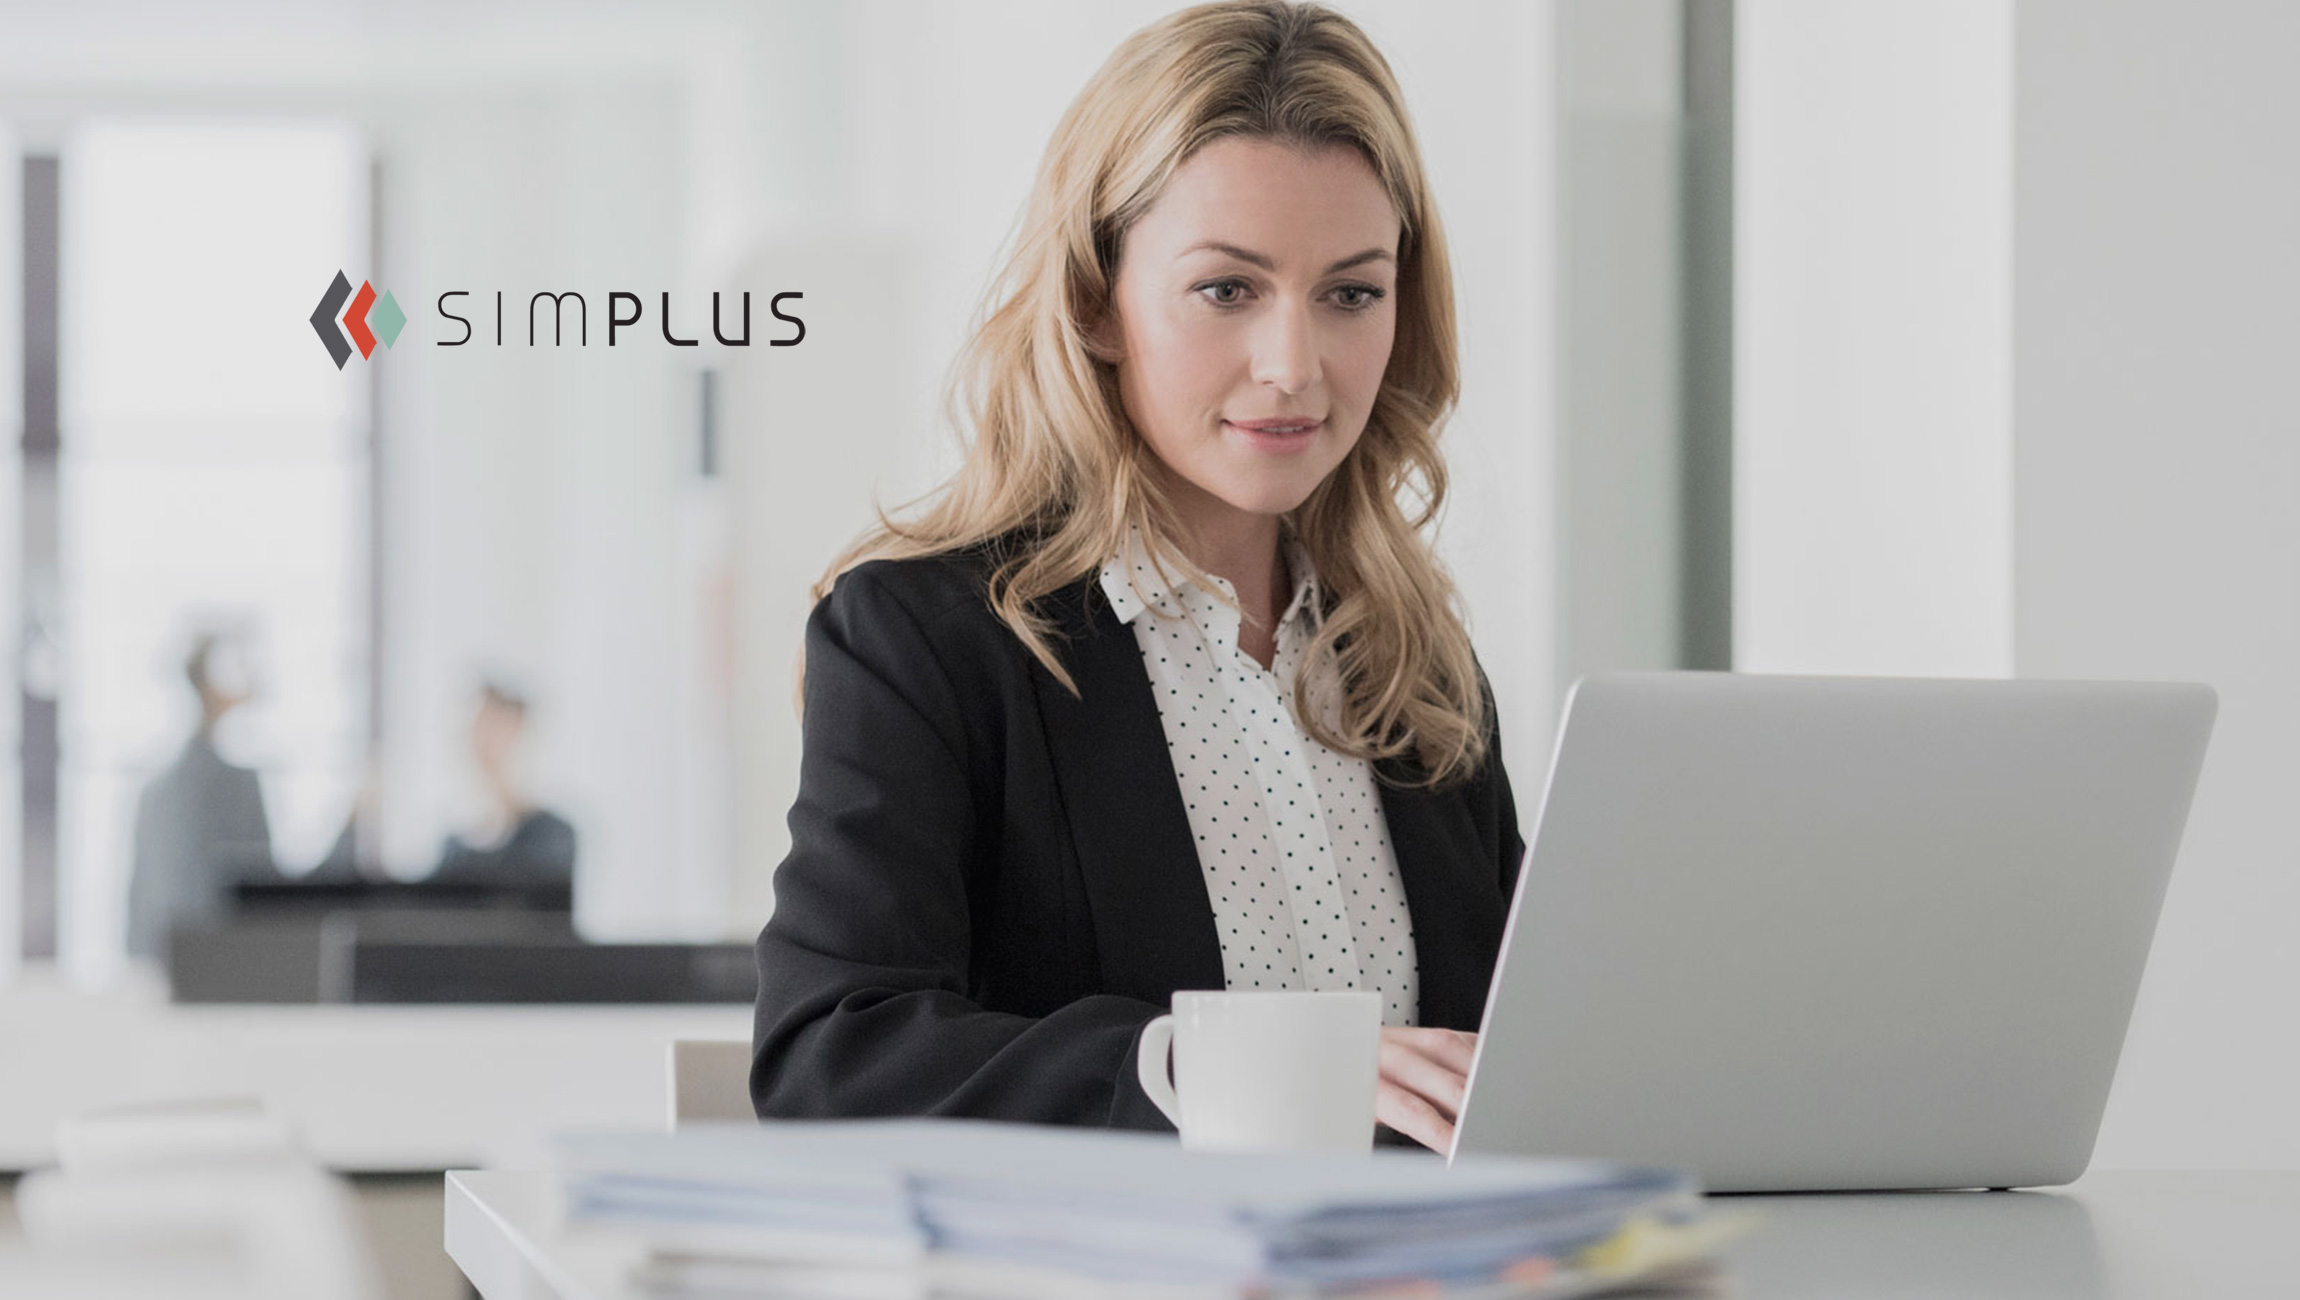 Simplus Closes $20 Million in Financing to Fuel Continued Growth